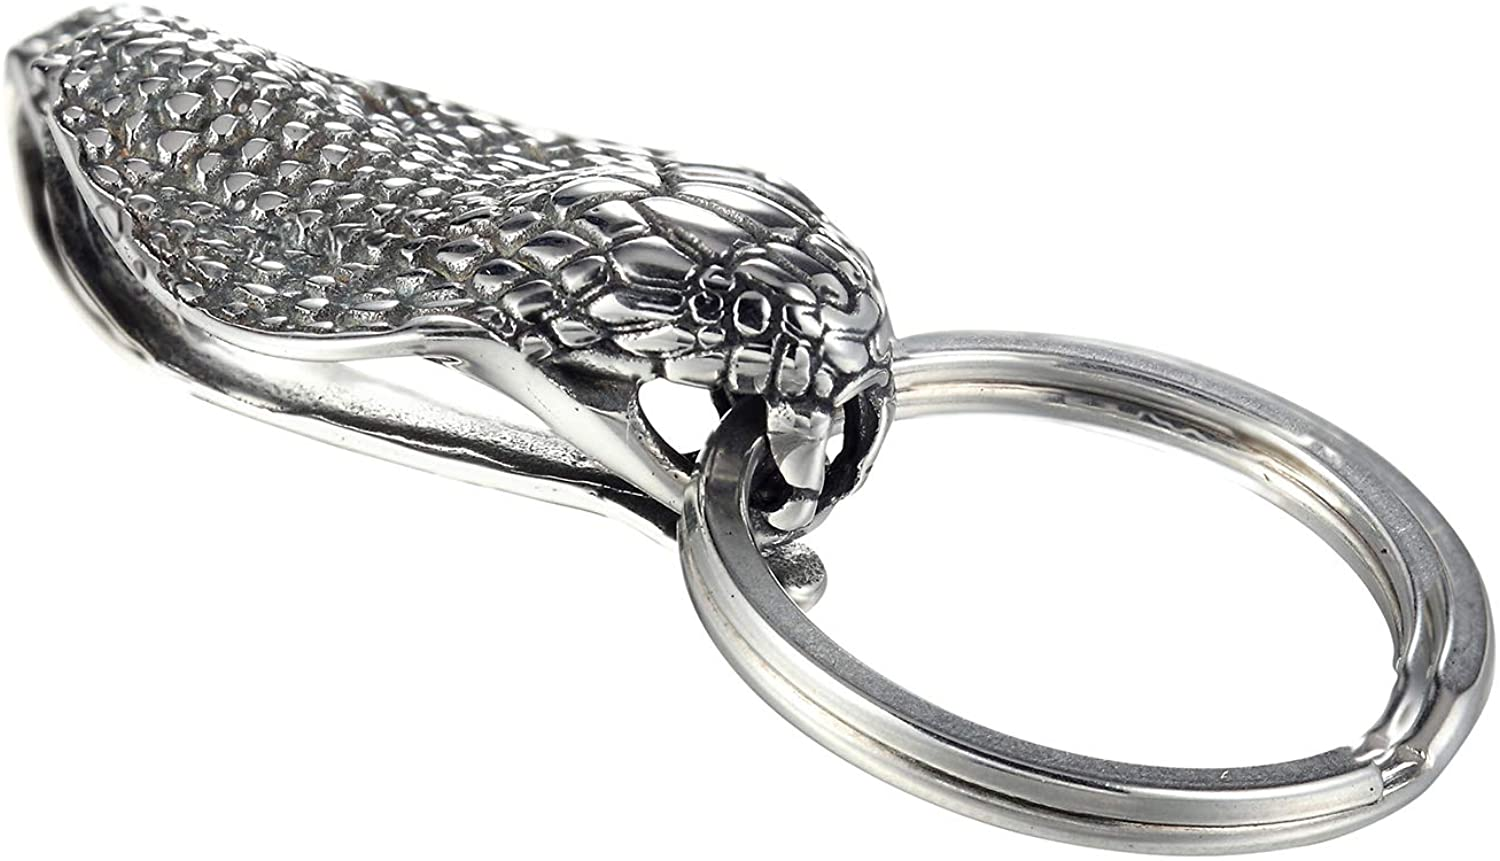 CHOMAY Key Chain Holders Stainless Steel Hip Hop Gothic 3D KeyChains with 3 Spilt Rings